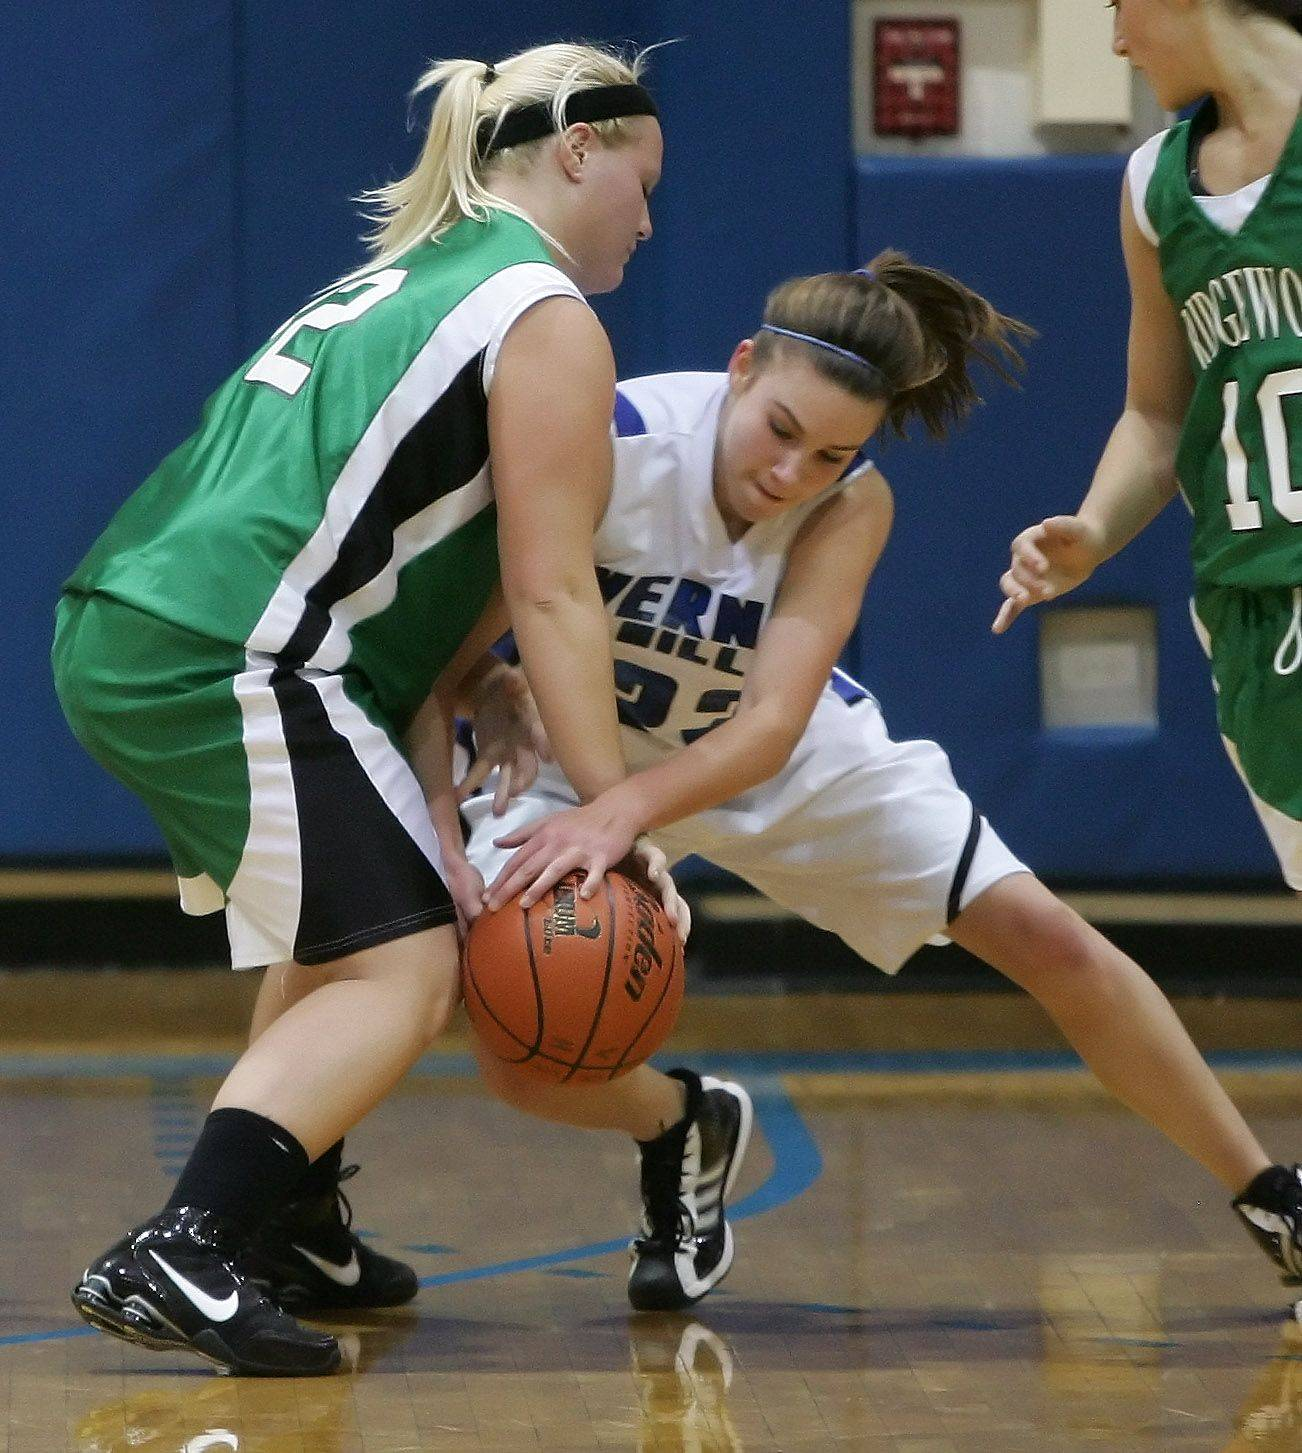 Vernon Hills' Brie Bahlmann steals the ball from Ridgewood guard Tara Coyle during basketball action Thursday in Vernon Hills.